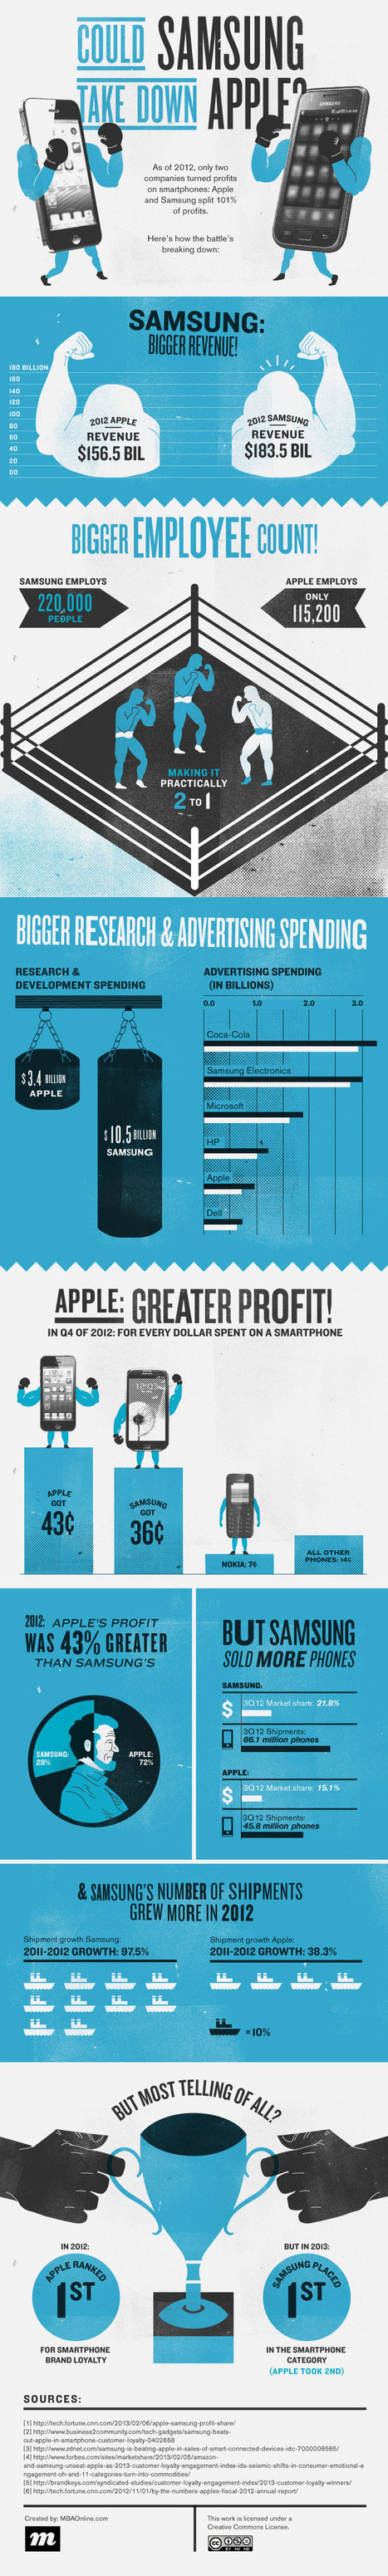 INFOGRAPHIC: Could Samsung Ever Take Down Apple? | JOIN SCOOP.IT AND FOLLOW ME ON SCOOP.IT | Scoop.it